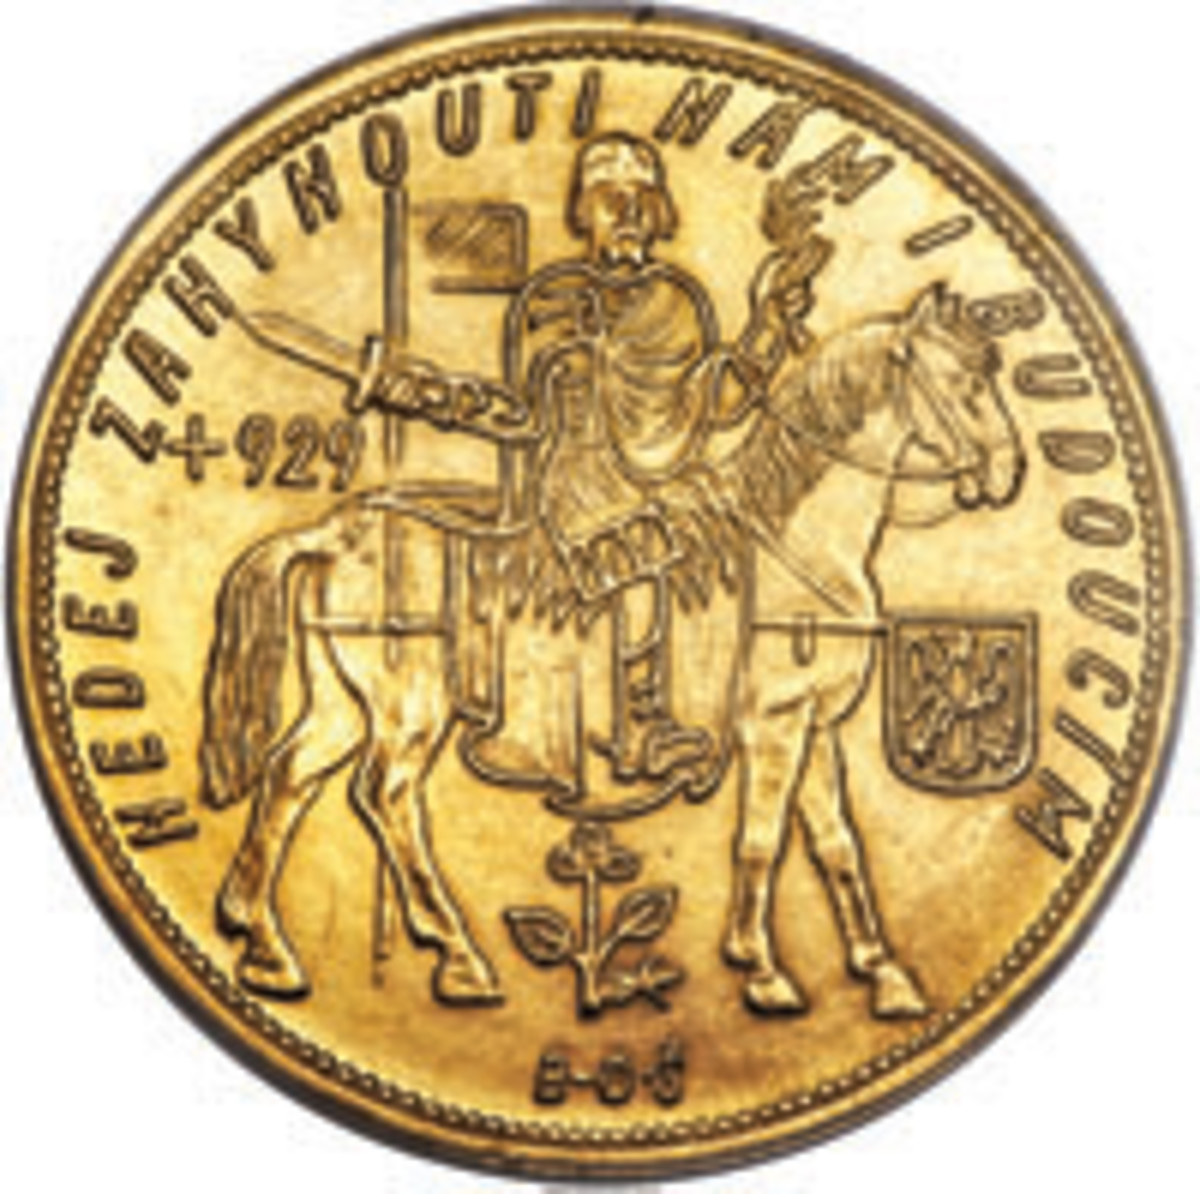 The common reverse of the gold 5 dukátu (KM-13) and 10 dukátu (KM-14) first struck in 1929 feature Duke Wenceslas on horseback. Alongside is his Flaming Eagle coat-of-arms. (Image courtesy Stack's-Bowers)